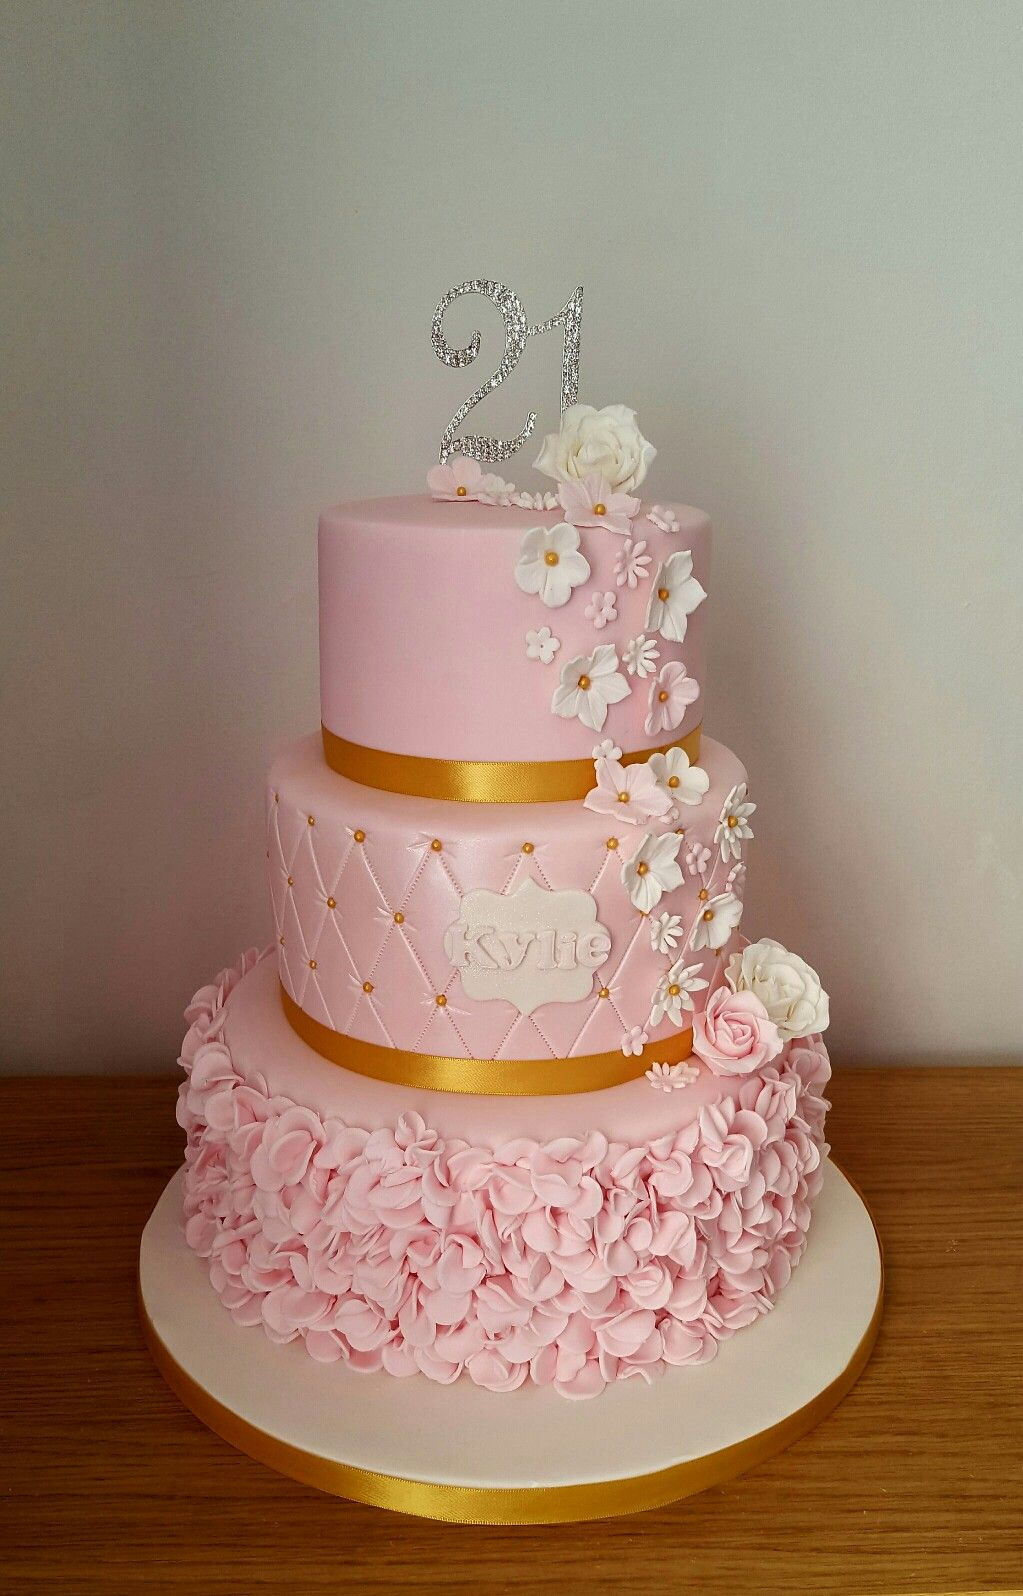 21st birthday cake with ruffles and flowers | Taylormade cakes and ...